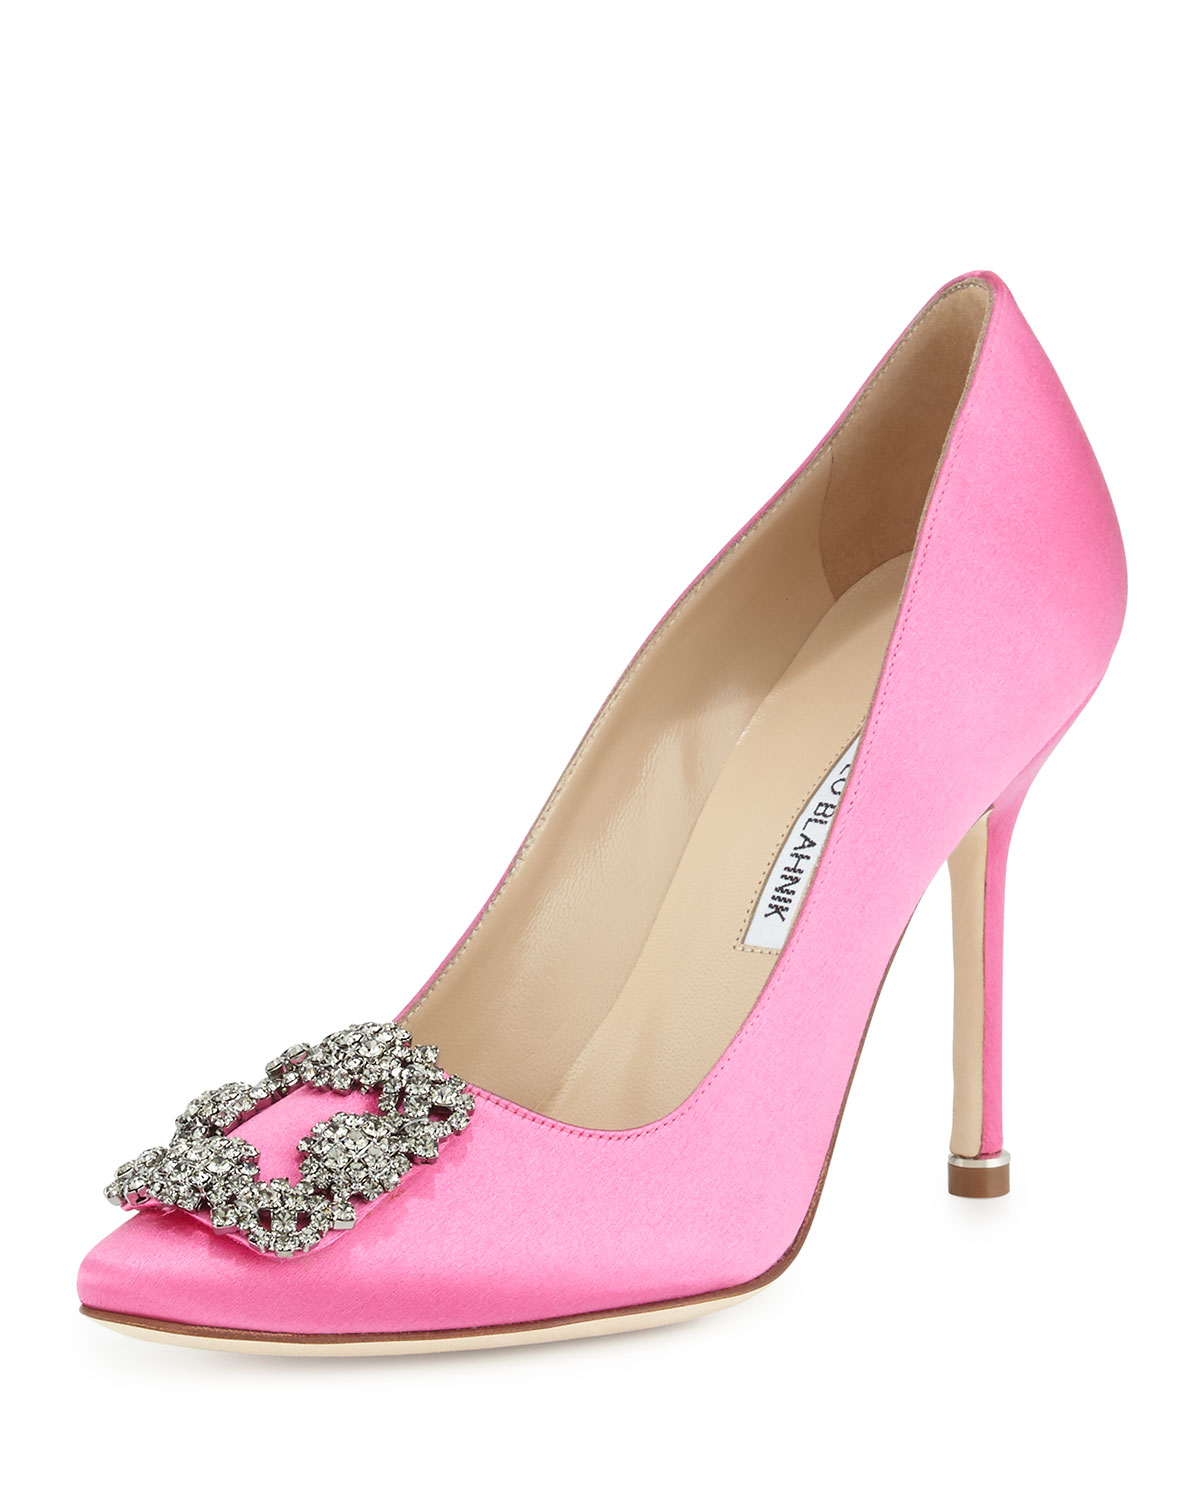 Manolo Blahnik Hangisi Pink Wedding Shoes